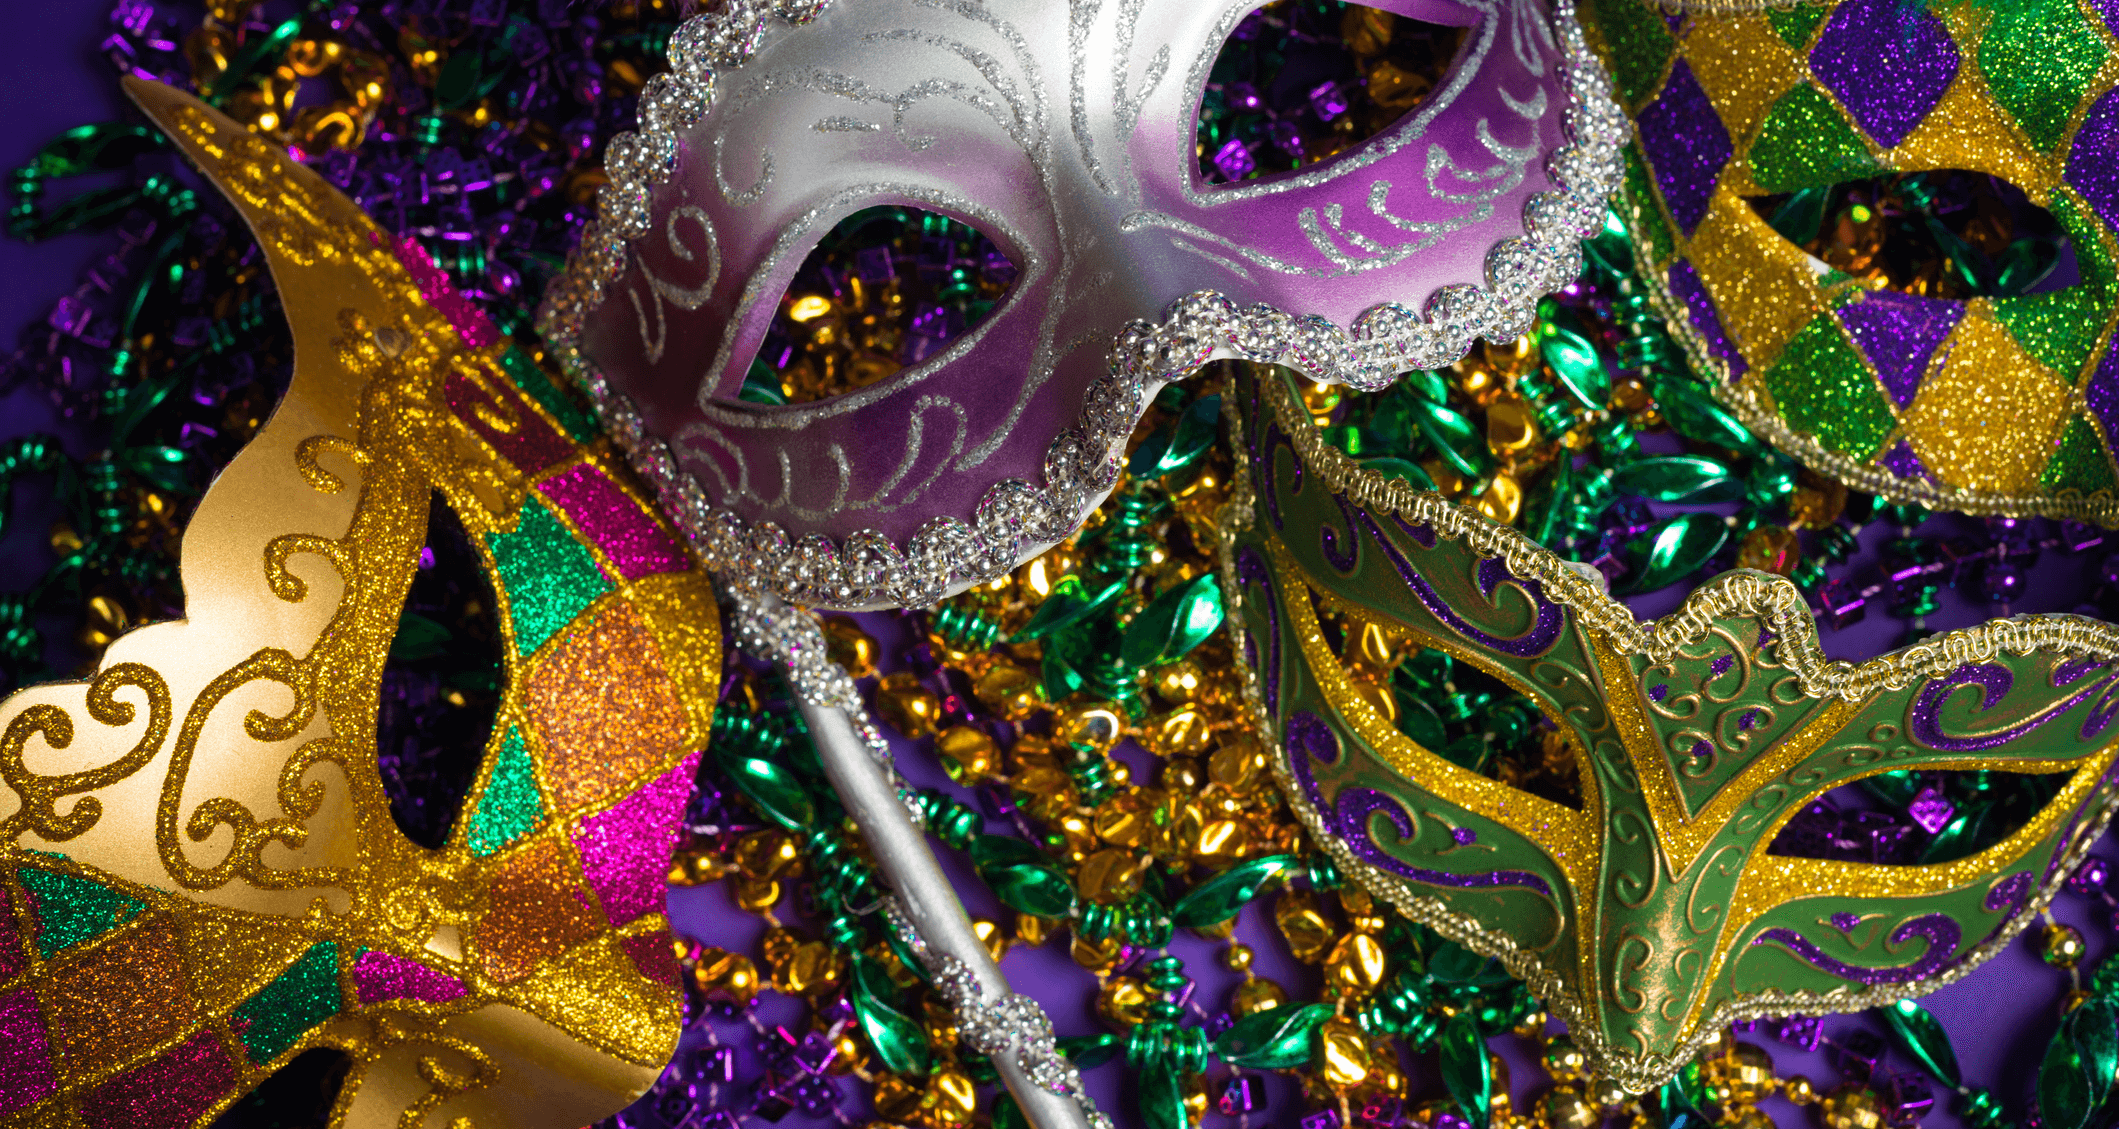 Mardi gras beads and masks